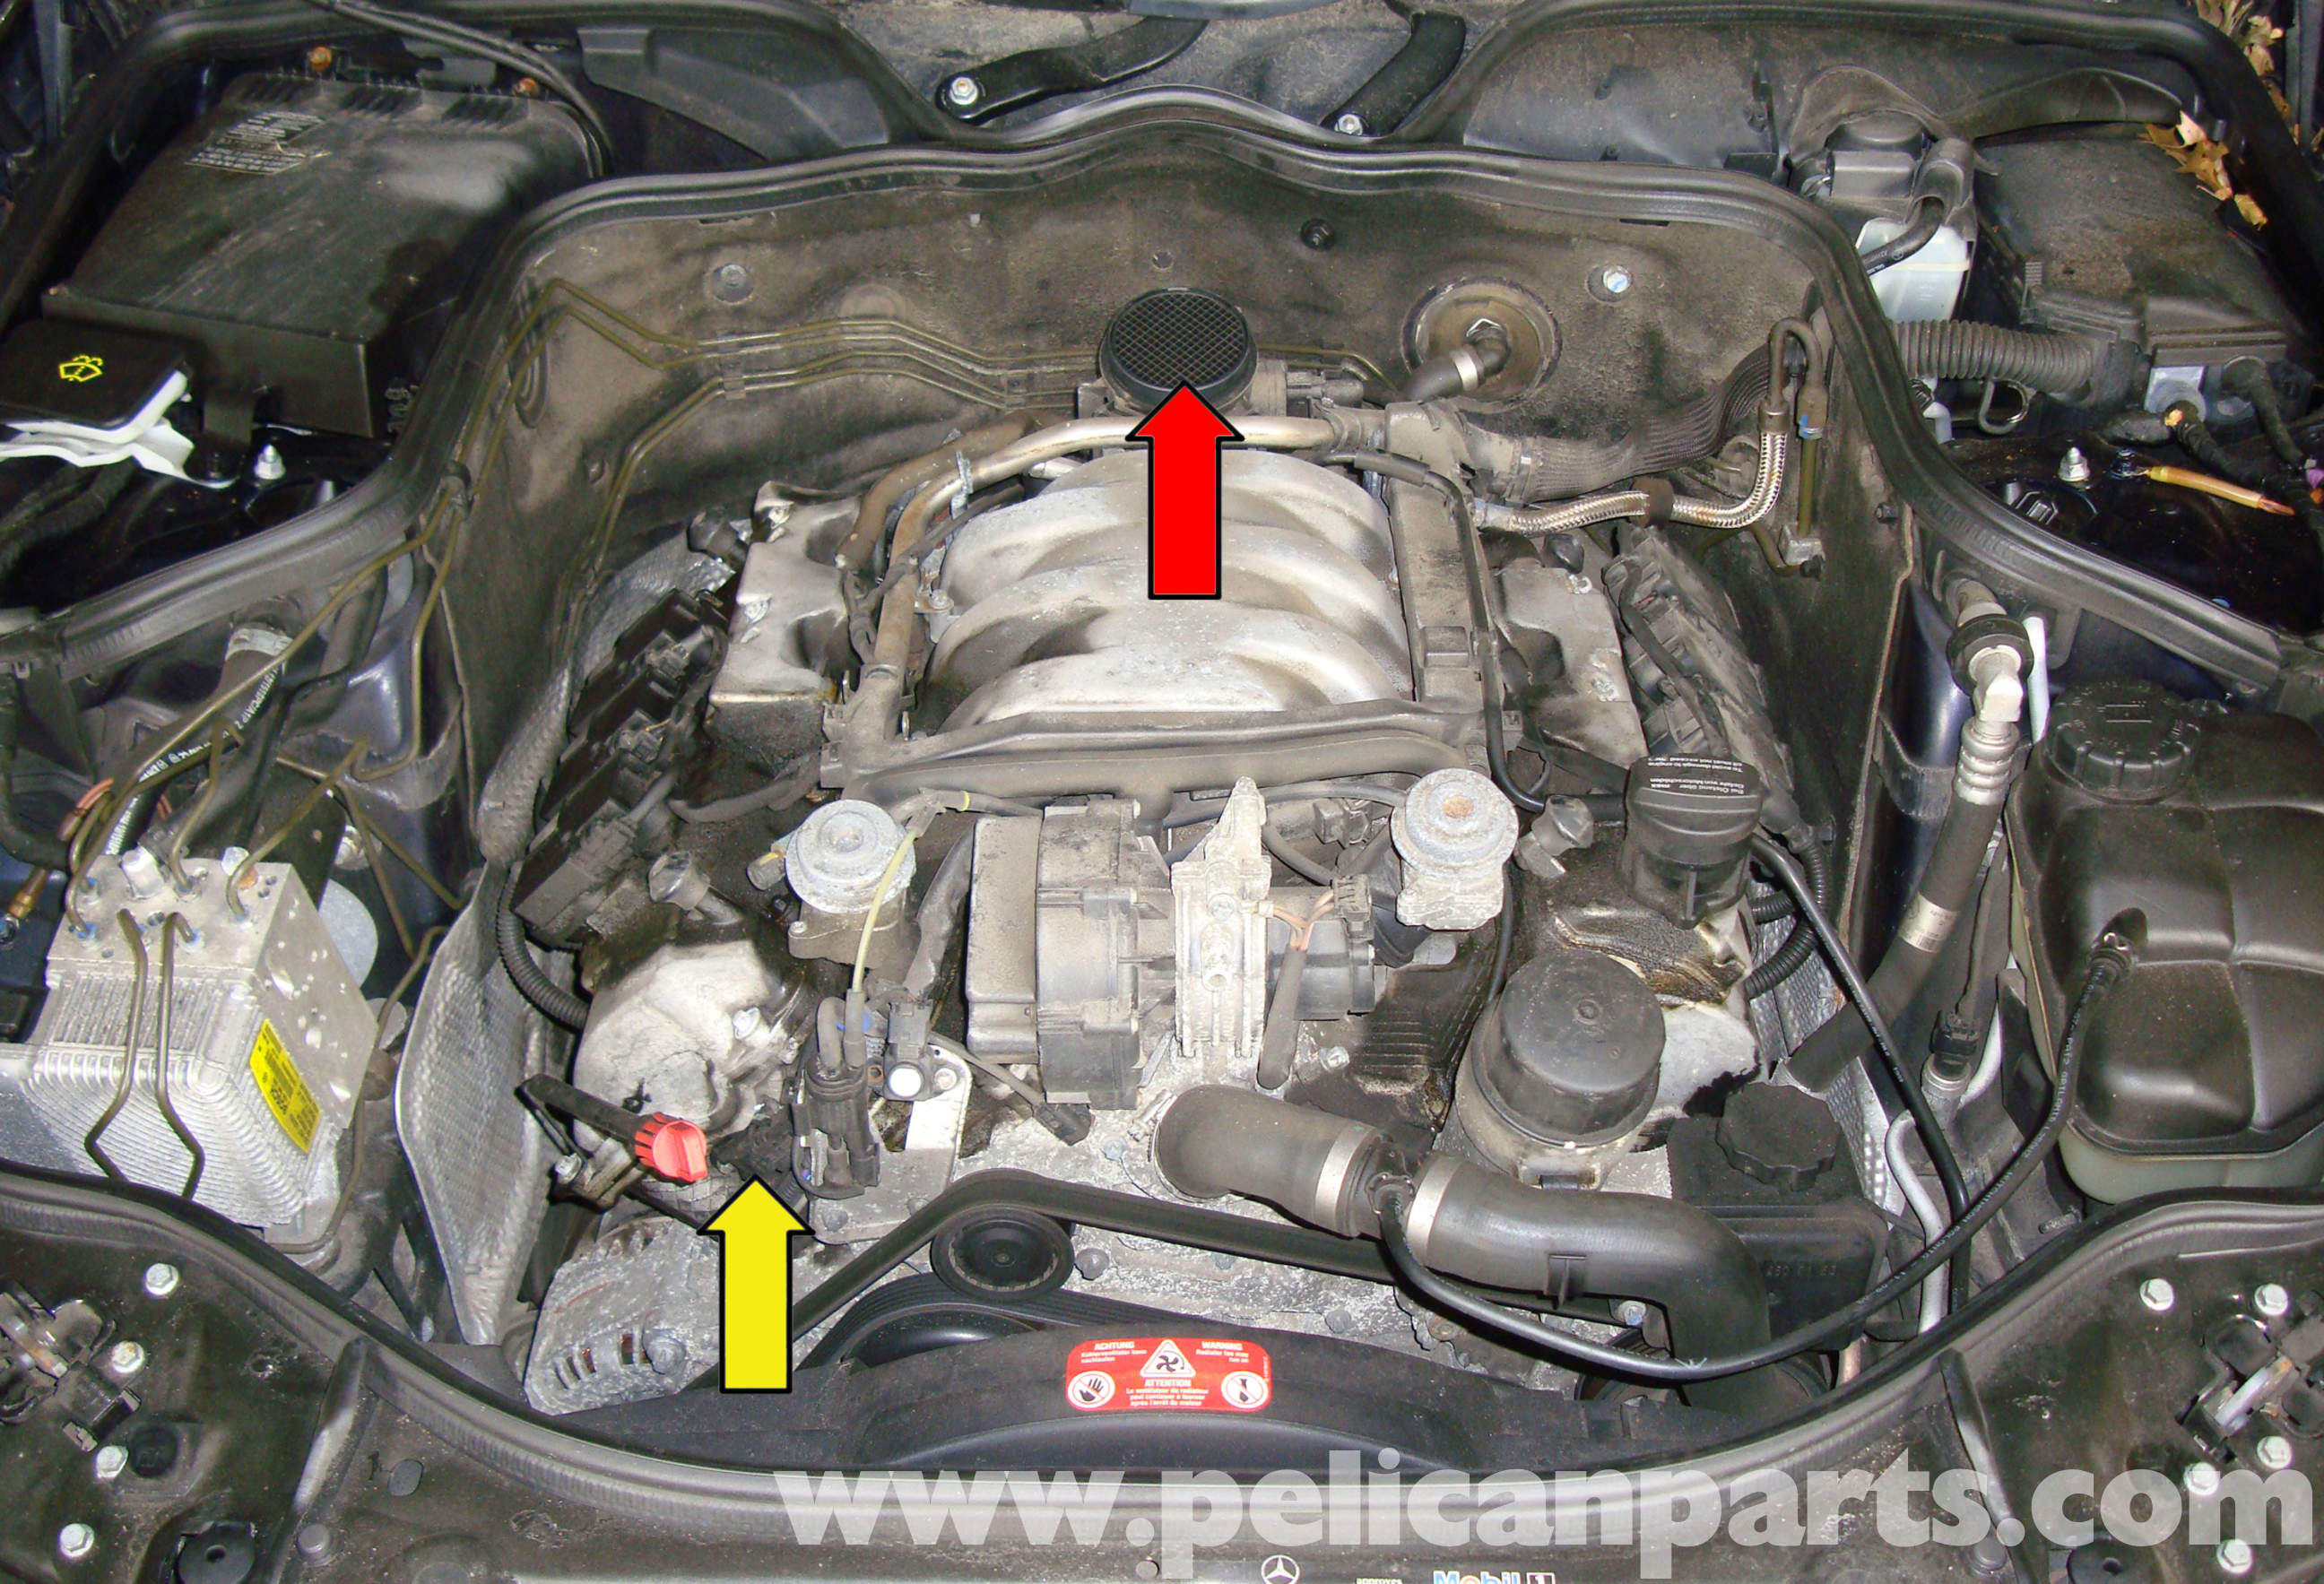 2008 Acura Tl Fuel Pump Manual Wiring Diagram Mercedes W211 Image Not Found Or Type Unknown